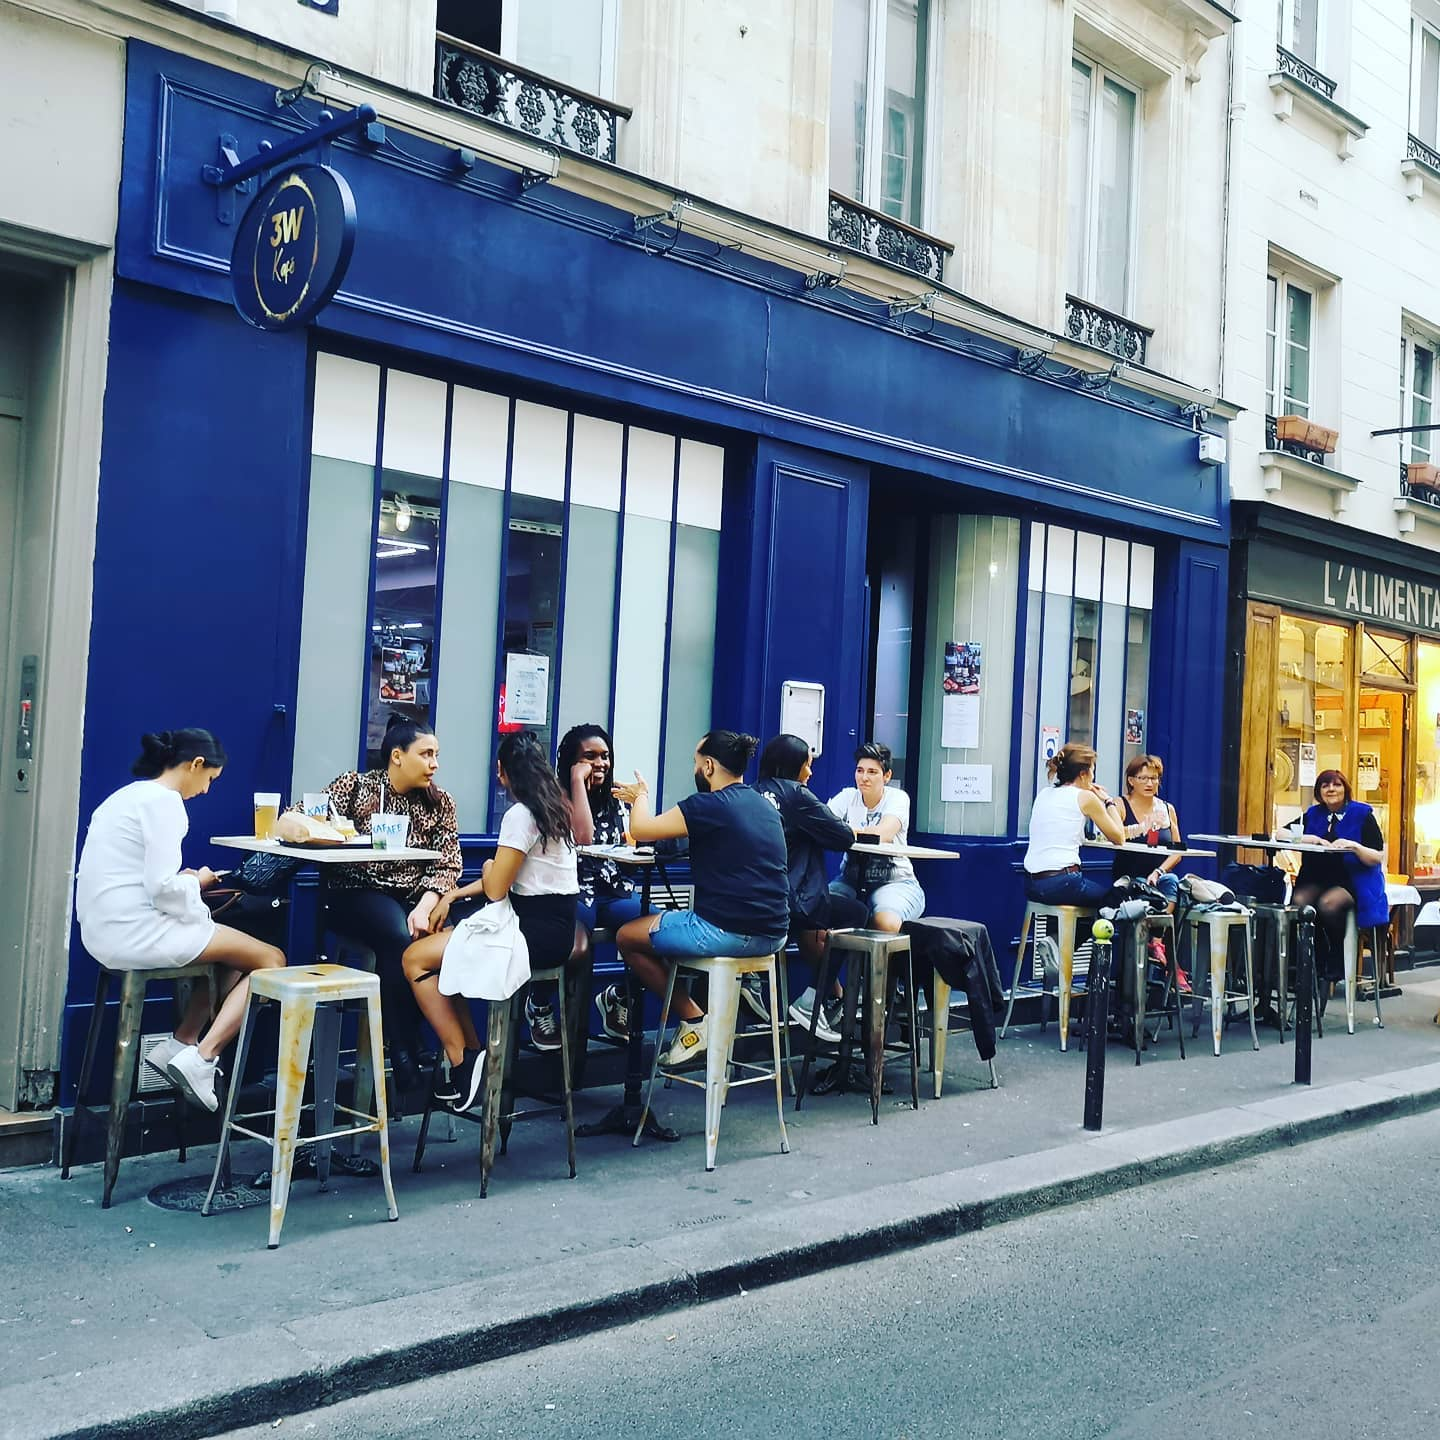 3W Kafé Paris